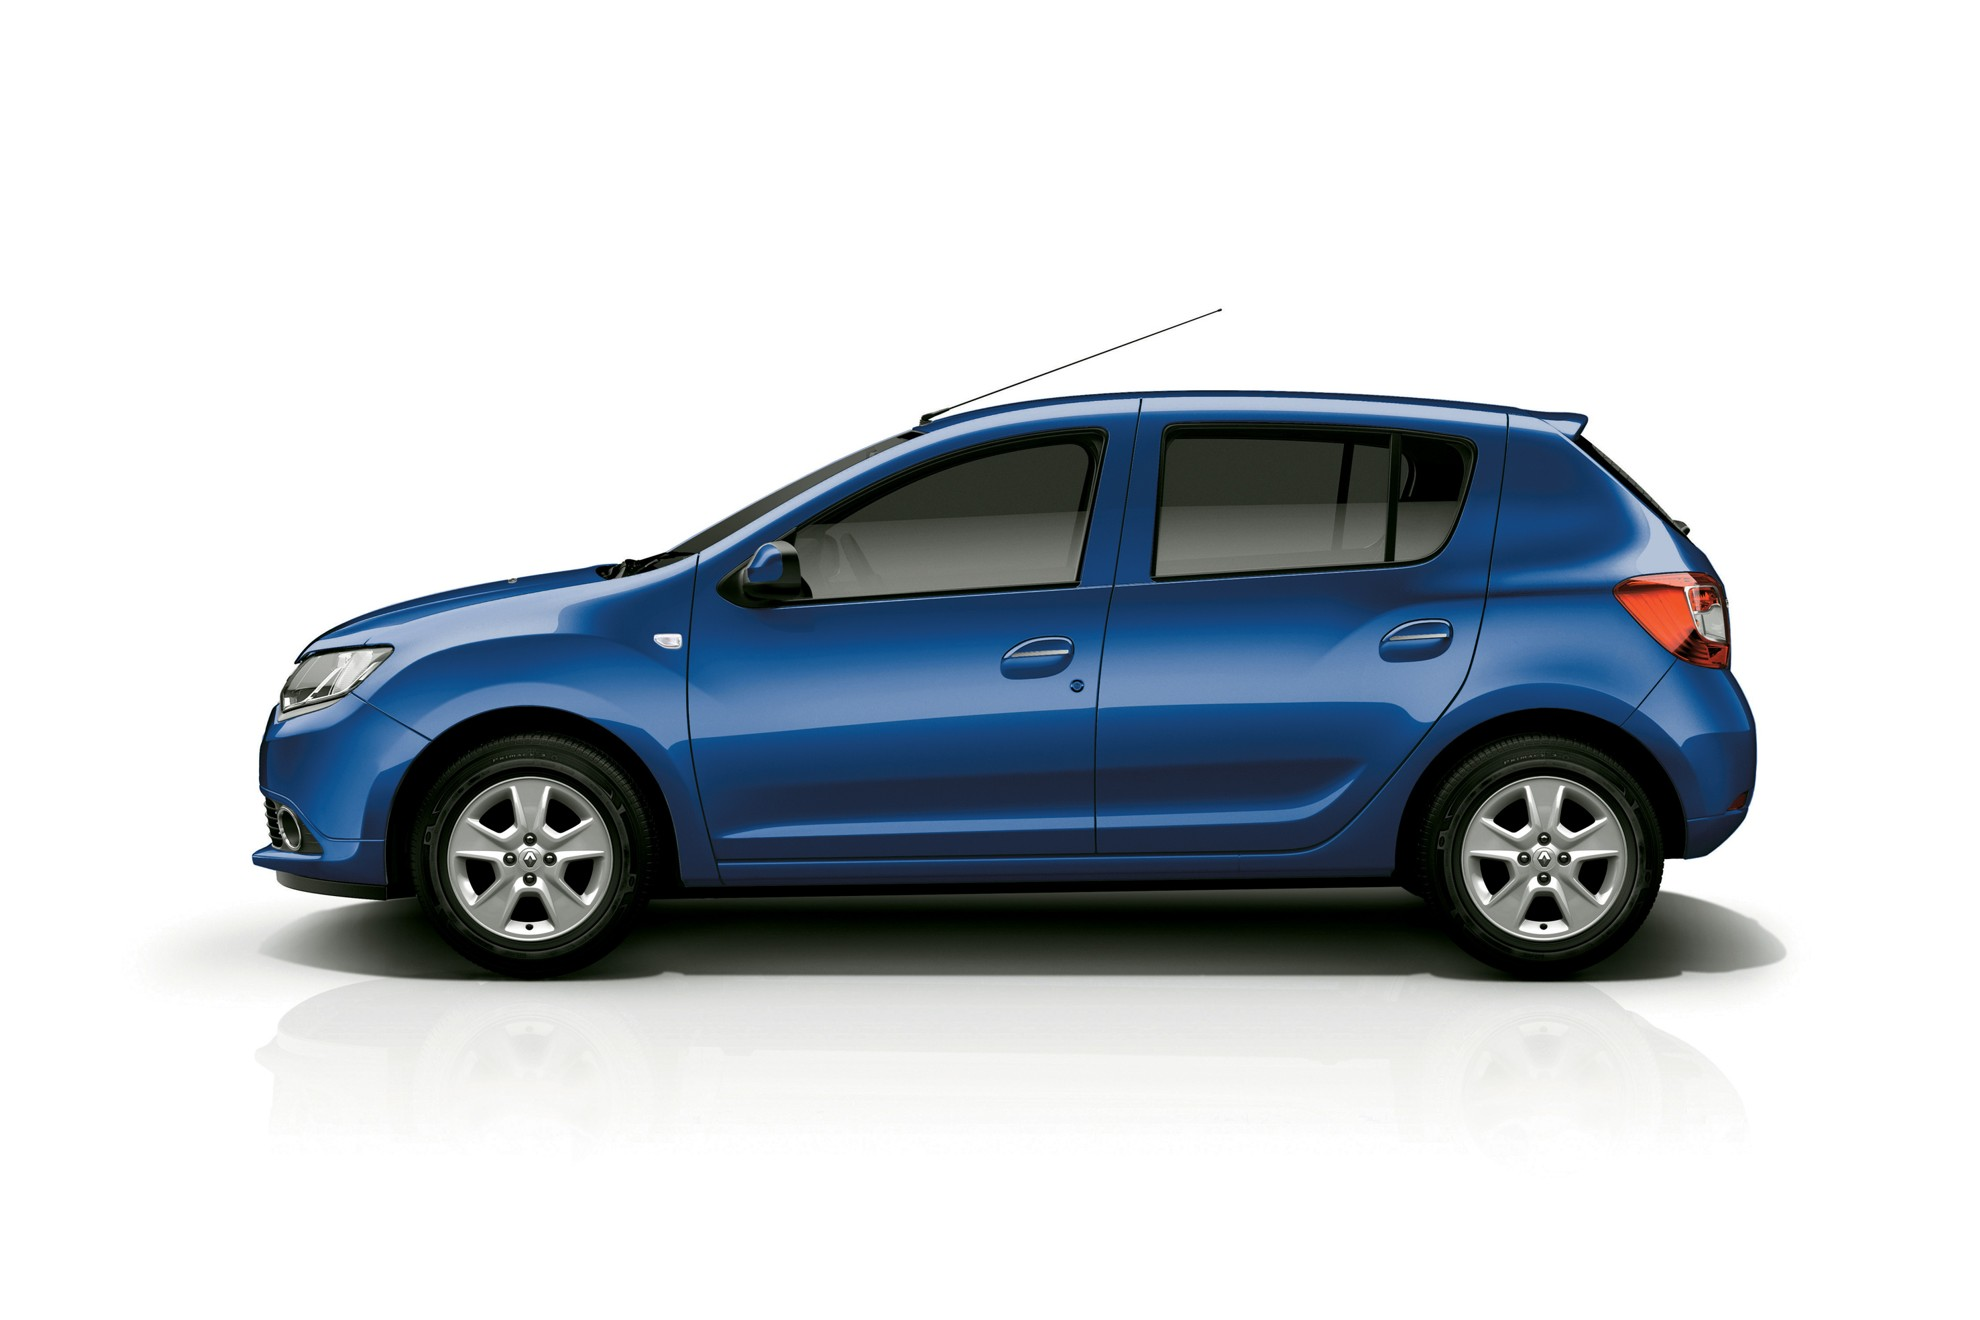 How-much-does-a-renault-sandero-cost